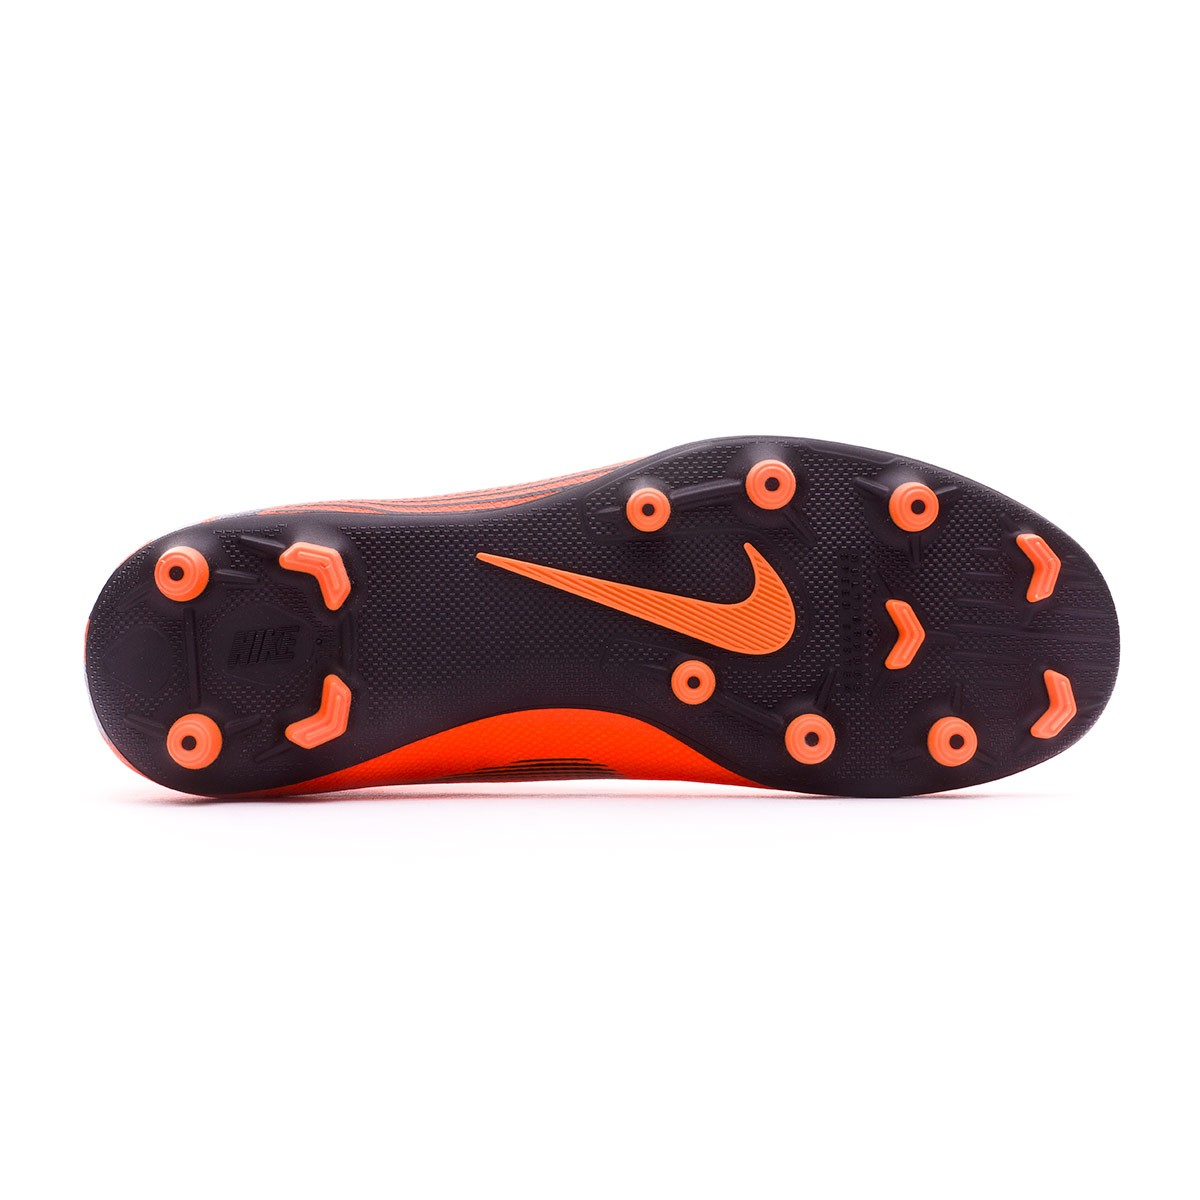 fb61a5b0e0f7 Bota de fútbol Nike Mercurial Superfly VI Club MG Total orange-Black-Volt -  Tienda de fútbol Fútbol Emotion